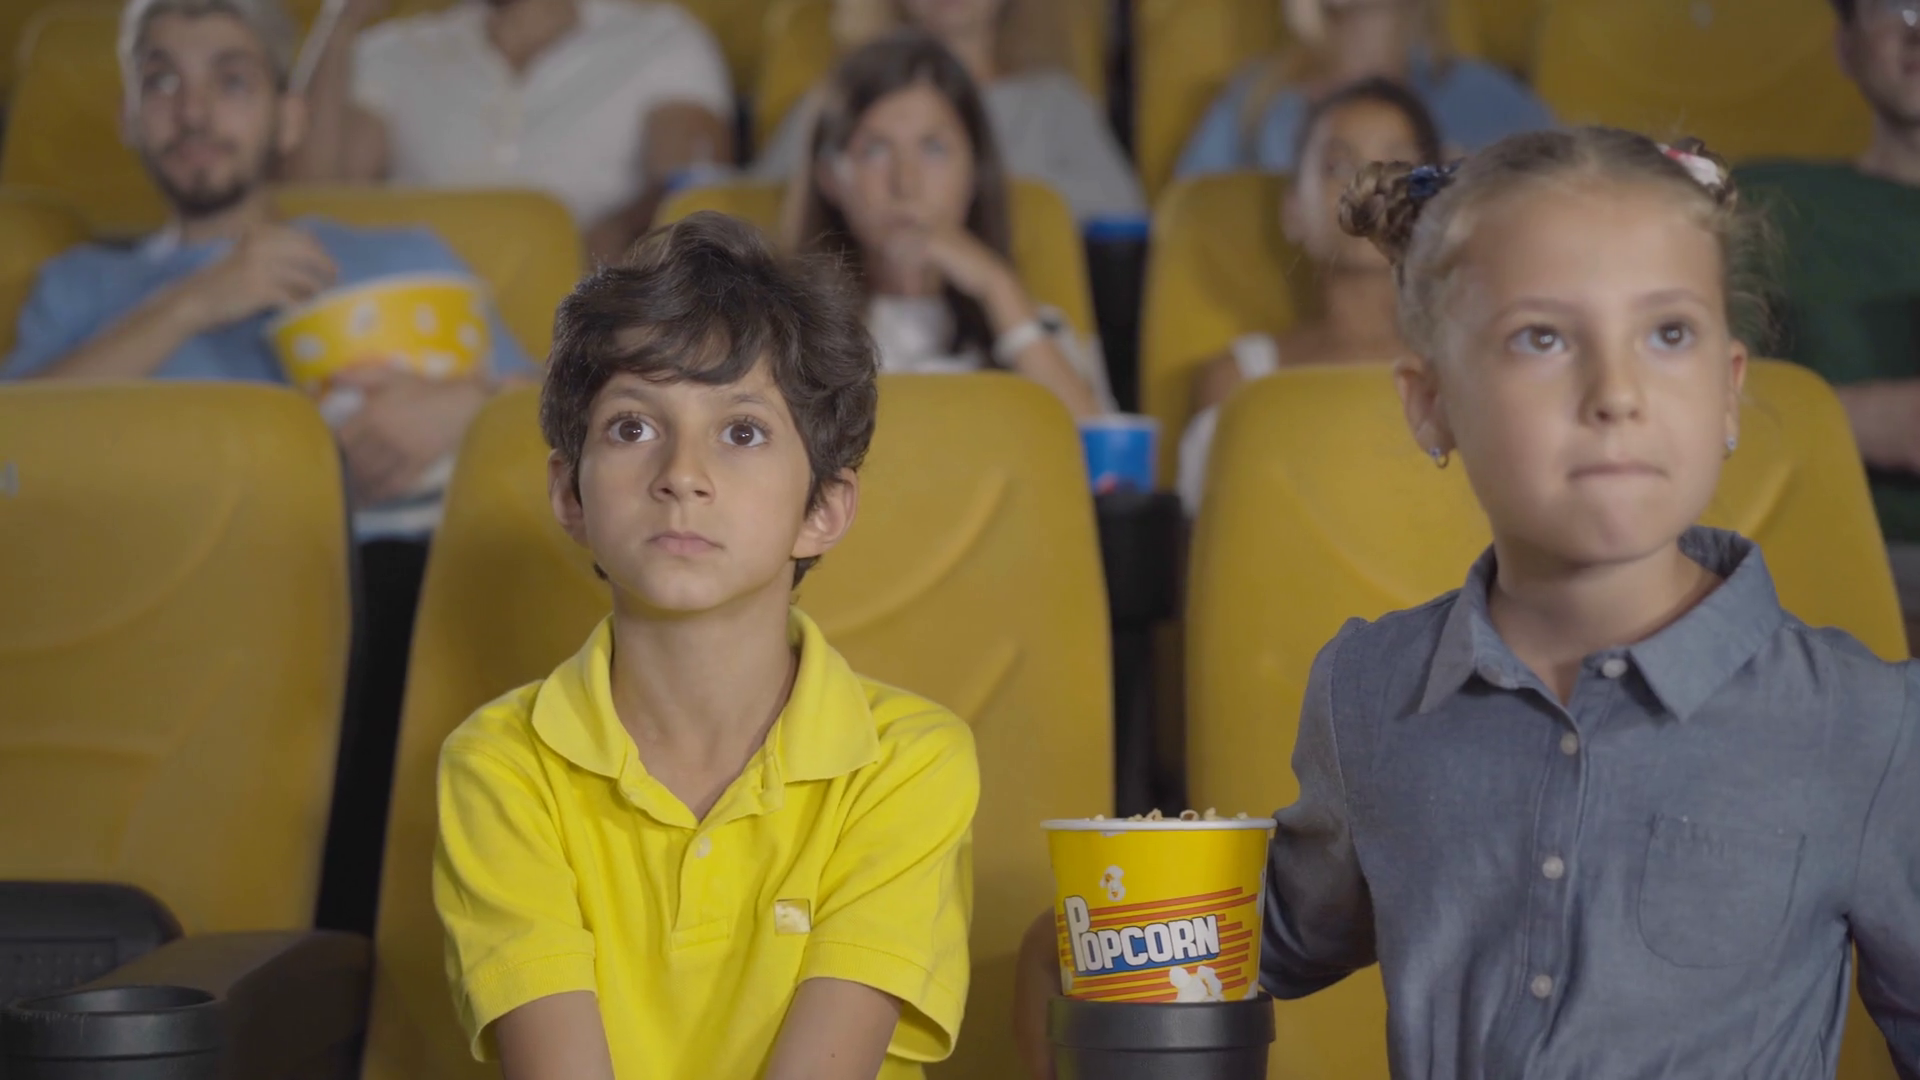 Frightened Middle Eastern Boy And Caucasian Girl Closing Eyes In Cinema Portrait Of Multiethnic Friends Watching Film In Movie Theatre Children Sitting On Yellow Chairs Looking At Horror Movie Stock Video Footage